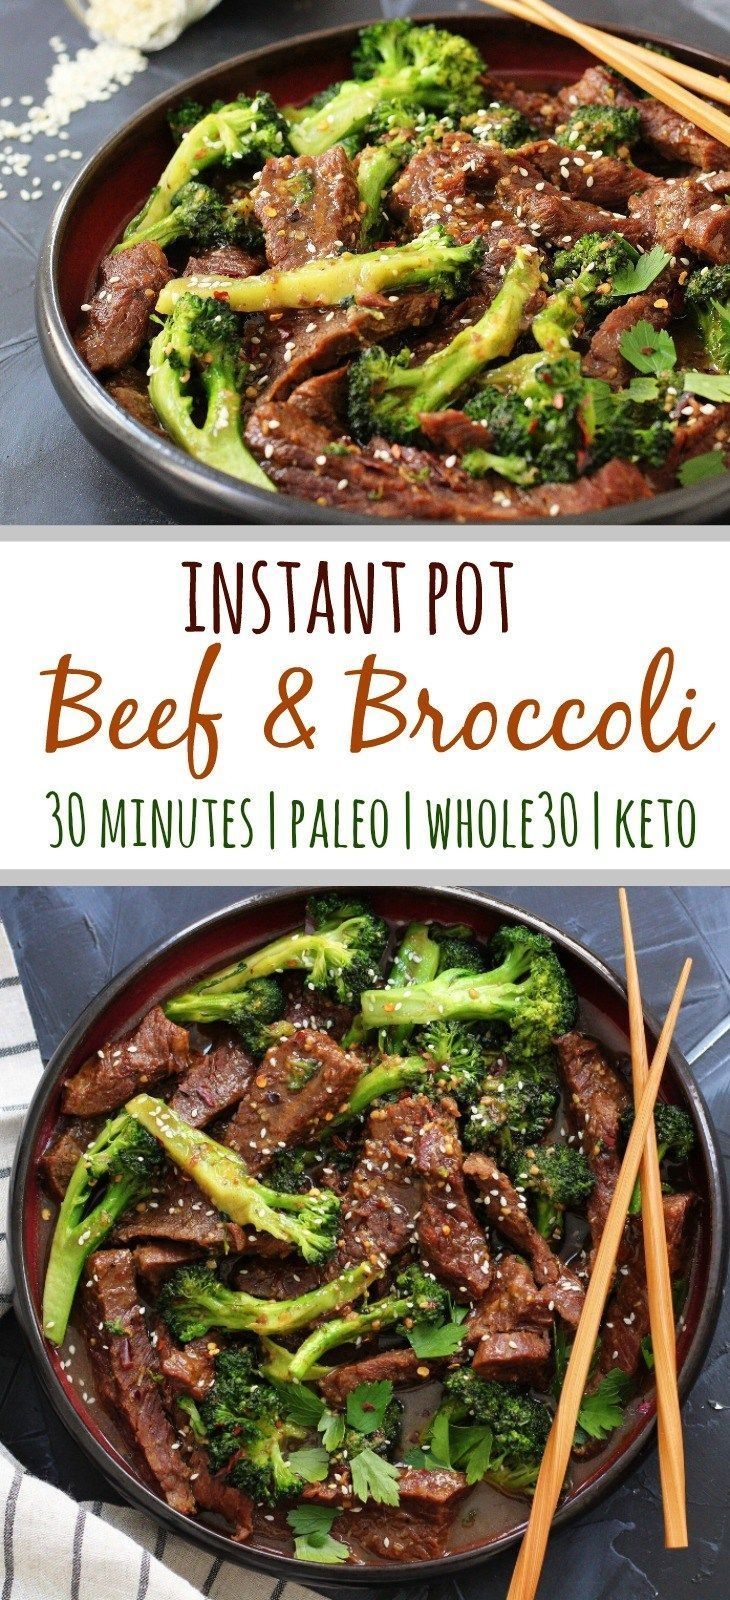 Instant Pot Beef and Broccoli: Whole30, Paleo and 30 Minutes! - Whole Kitchen Sink